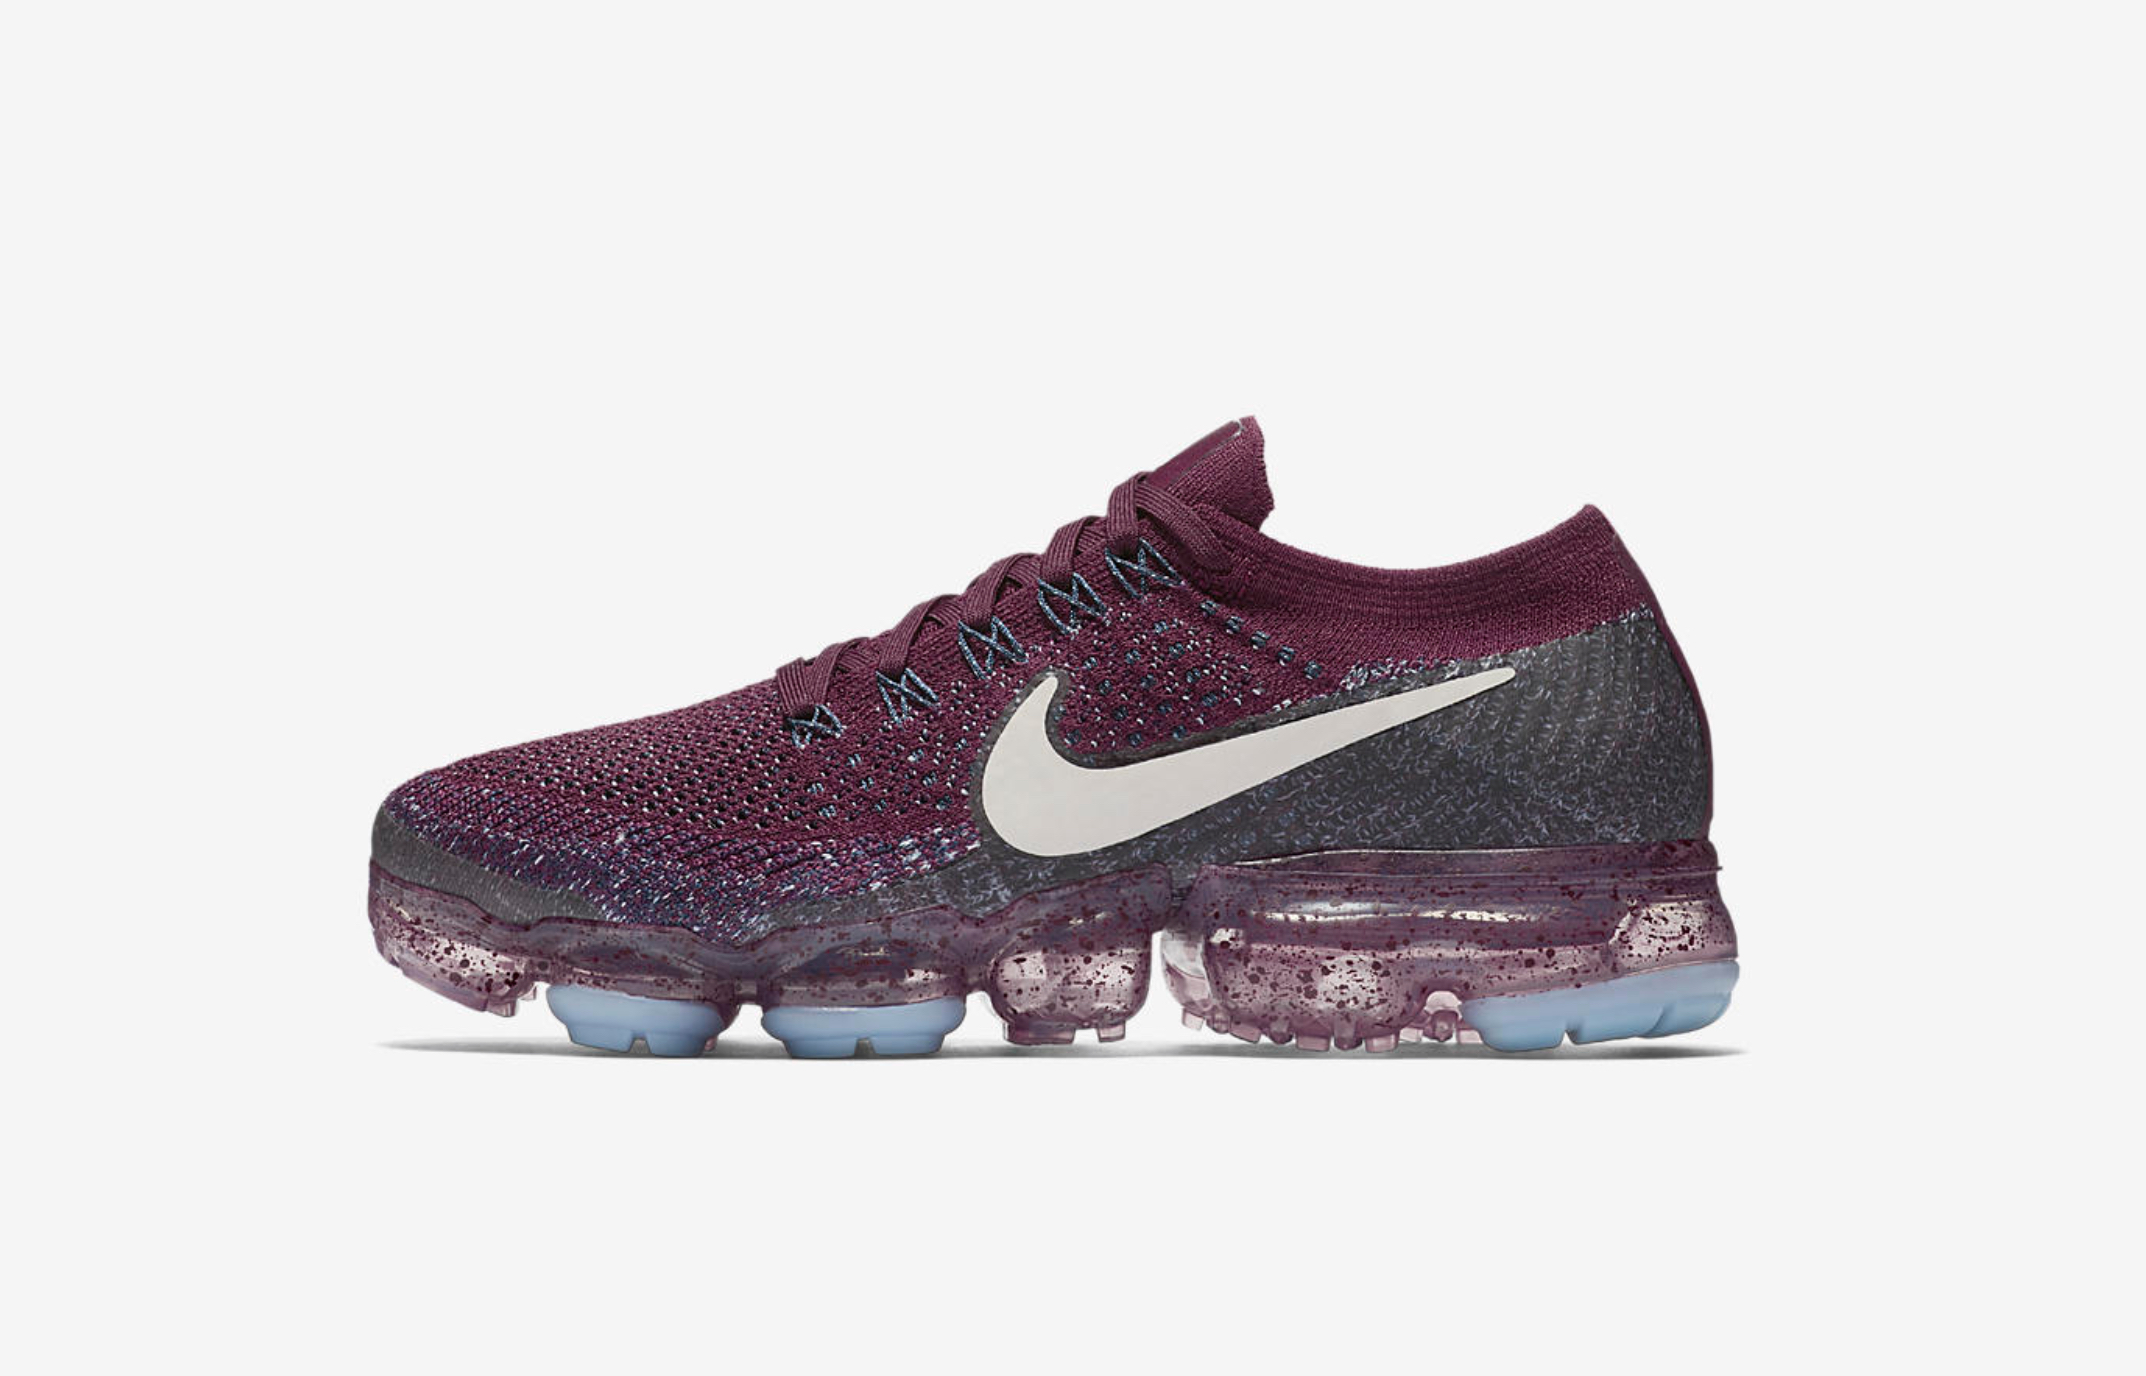 free nike shoes testers needed mary 951708